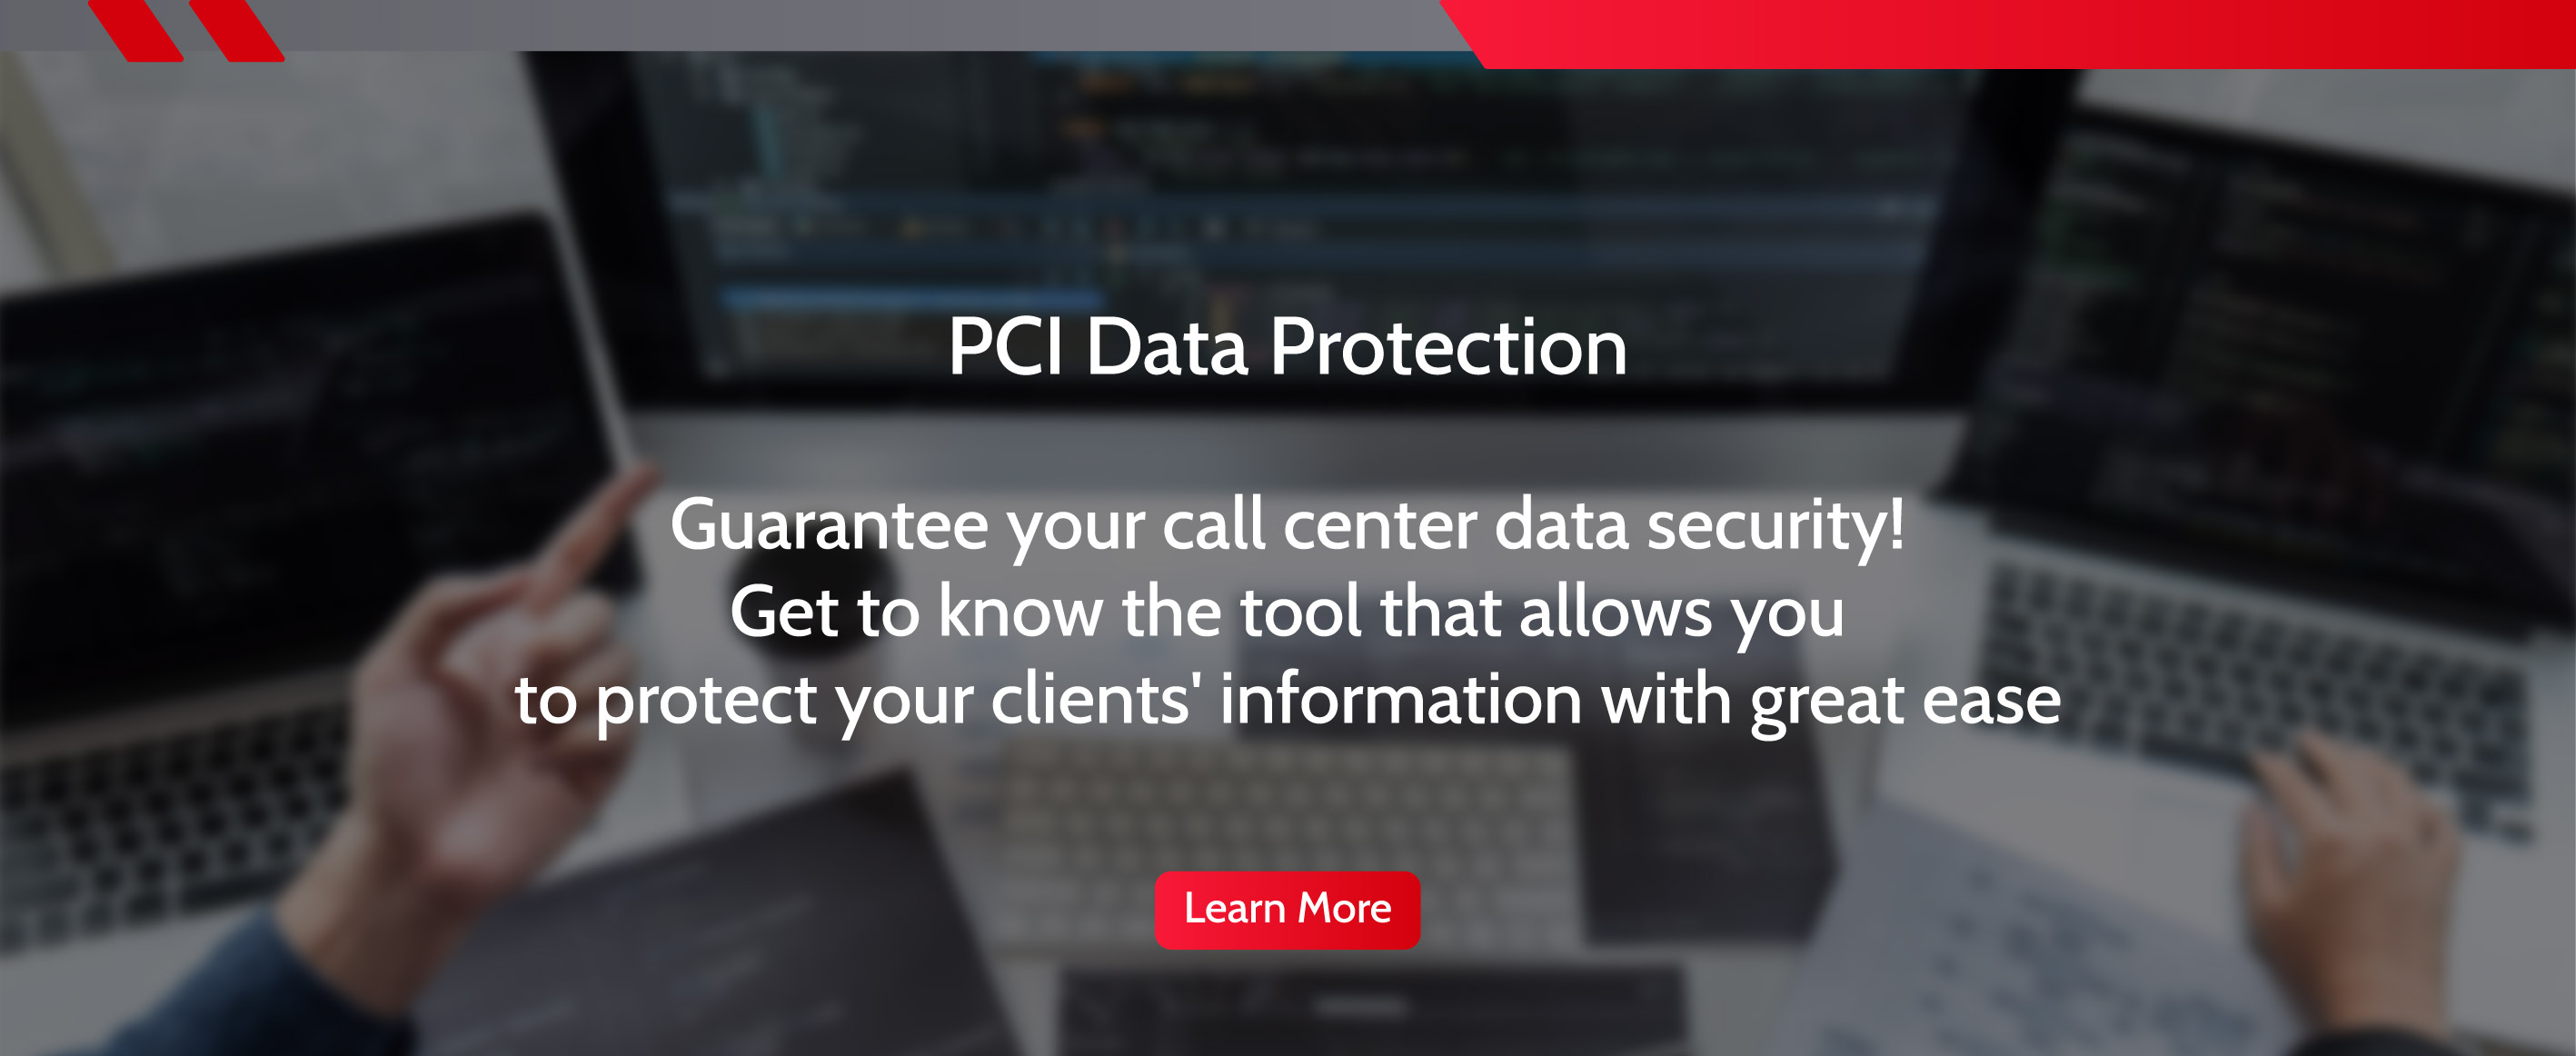 PCI Data Protection